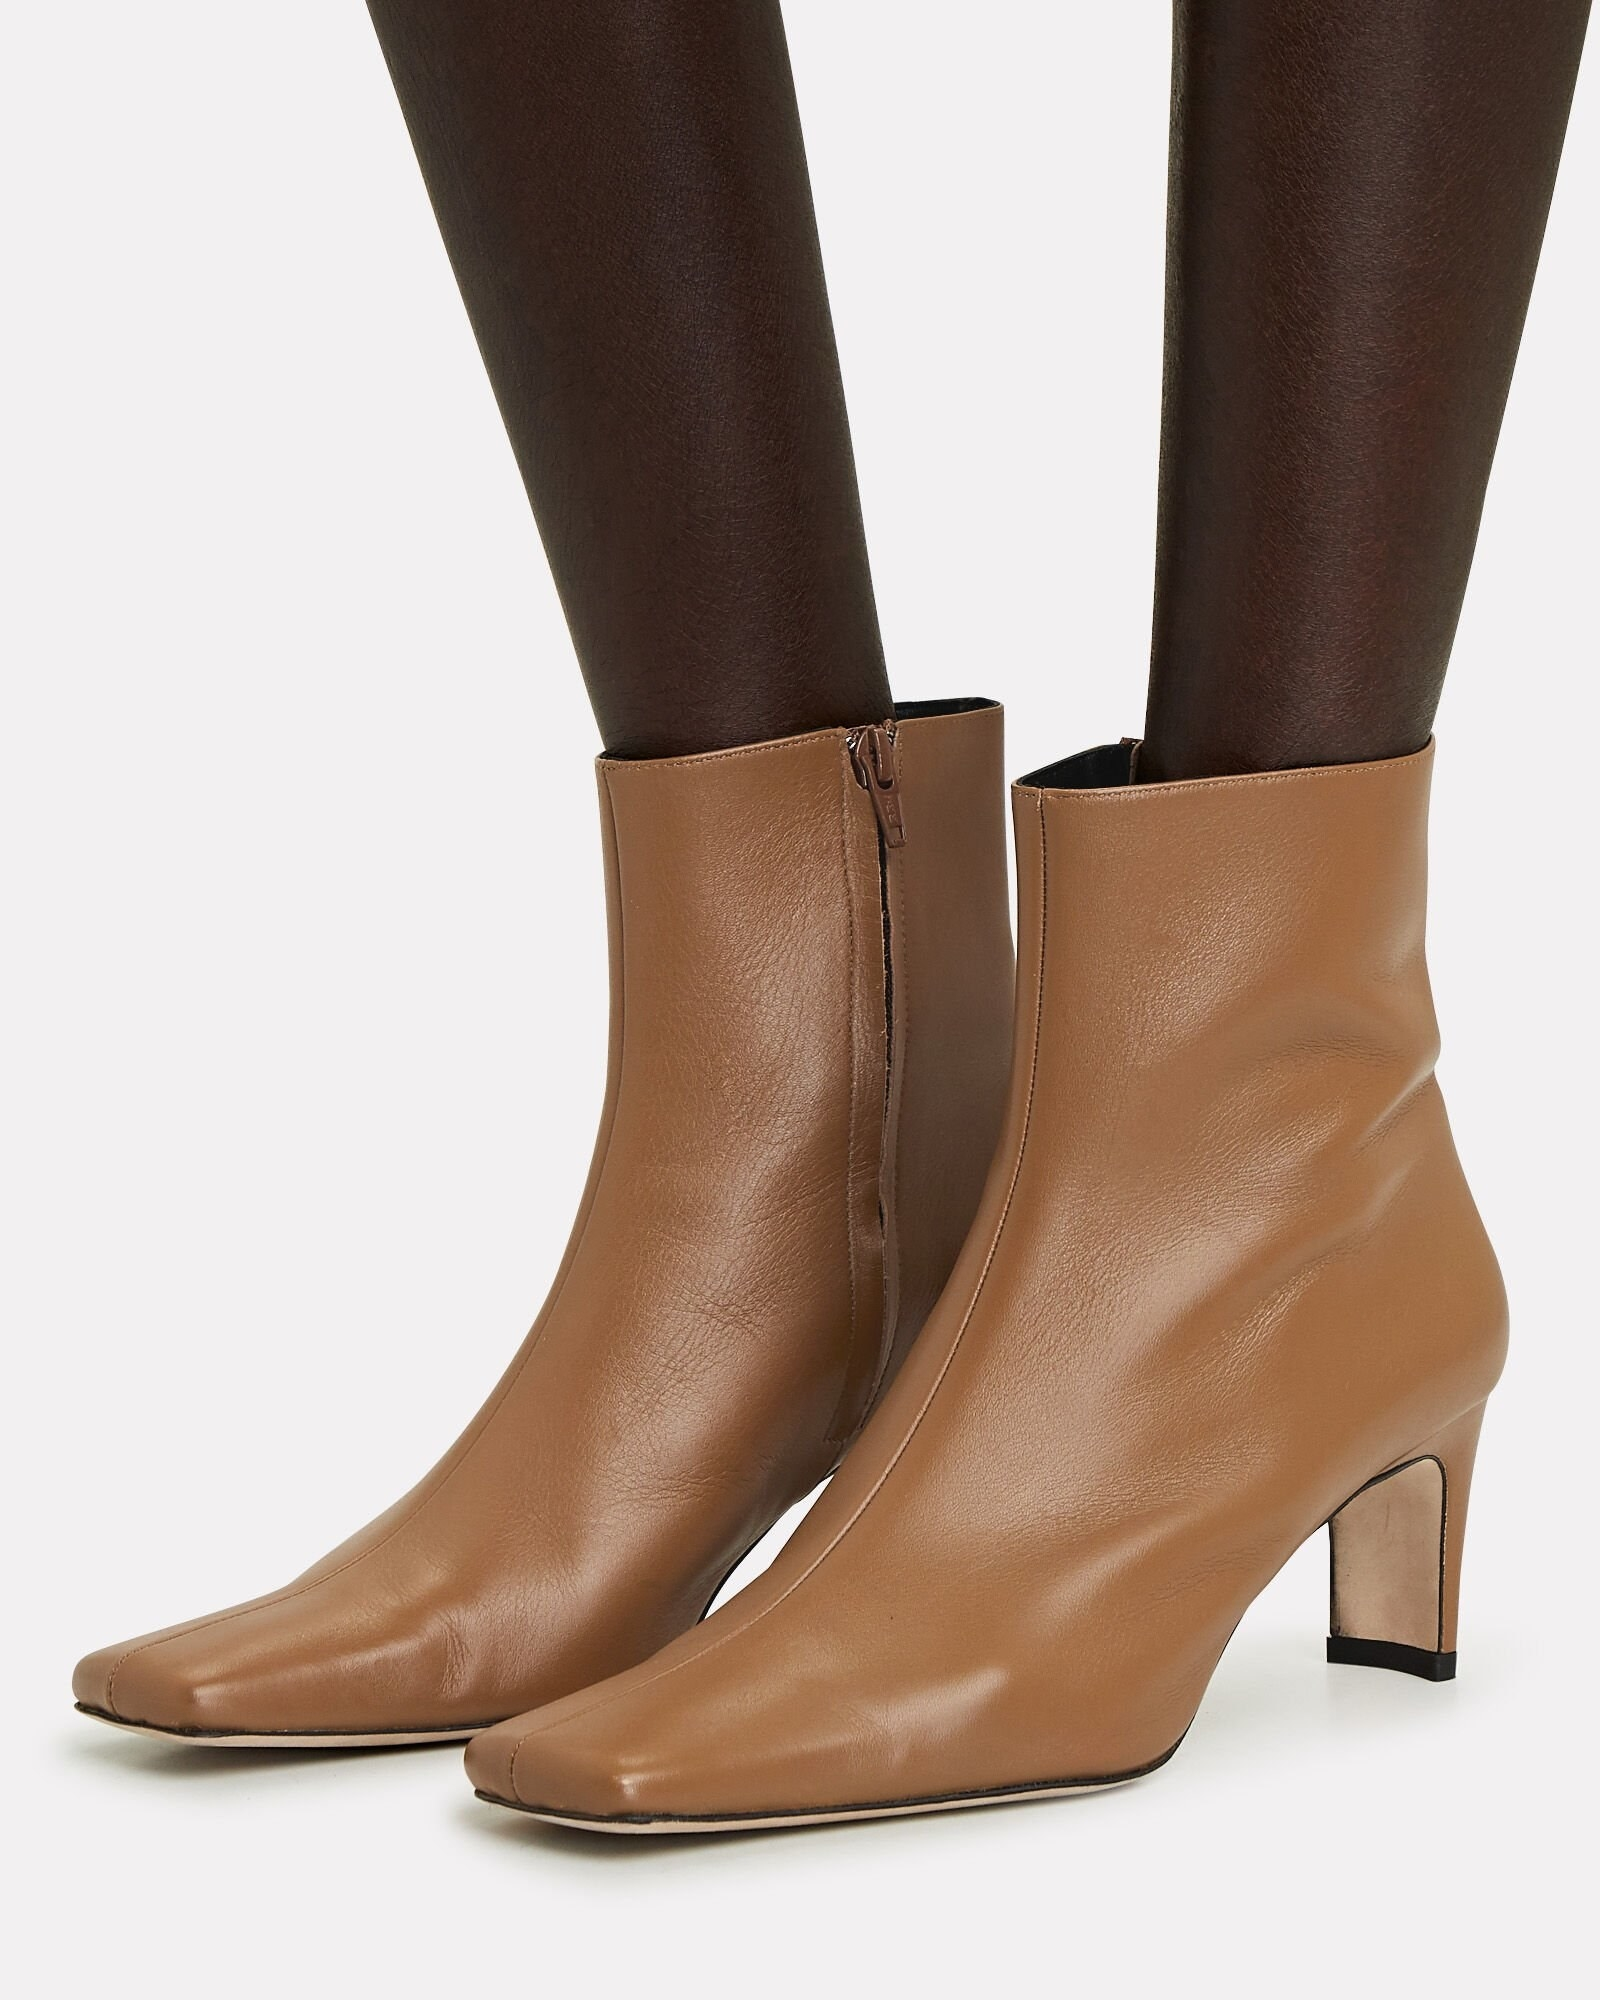 model wearing the brown pointed toe booties